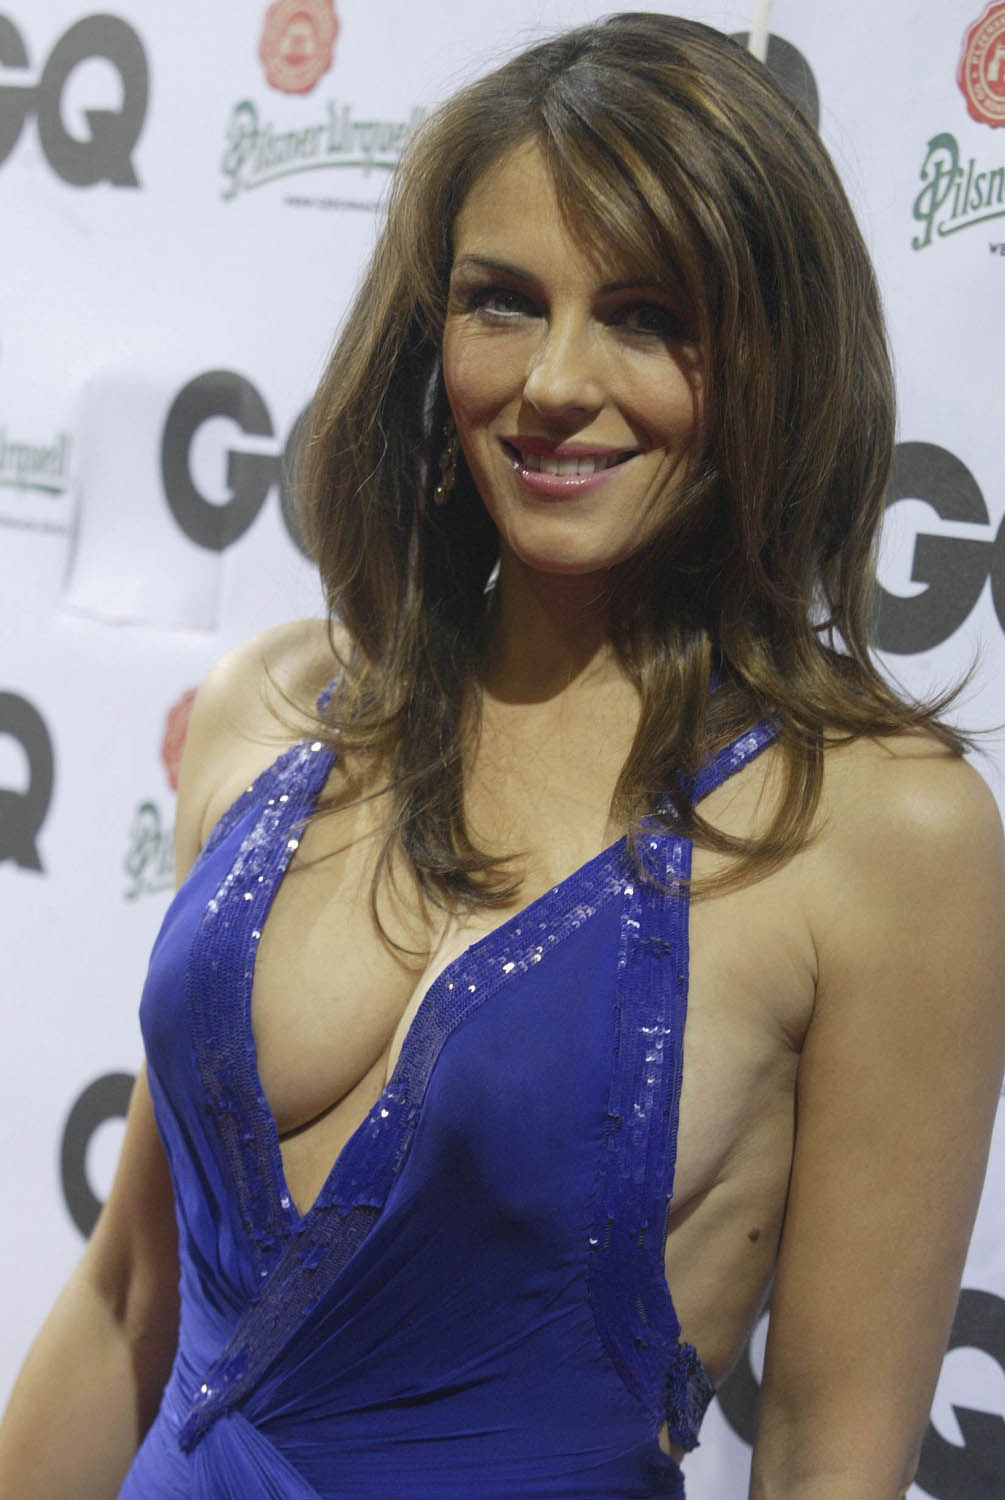 elizabeth-hurley-real-or-not-12-7-2006.jpg